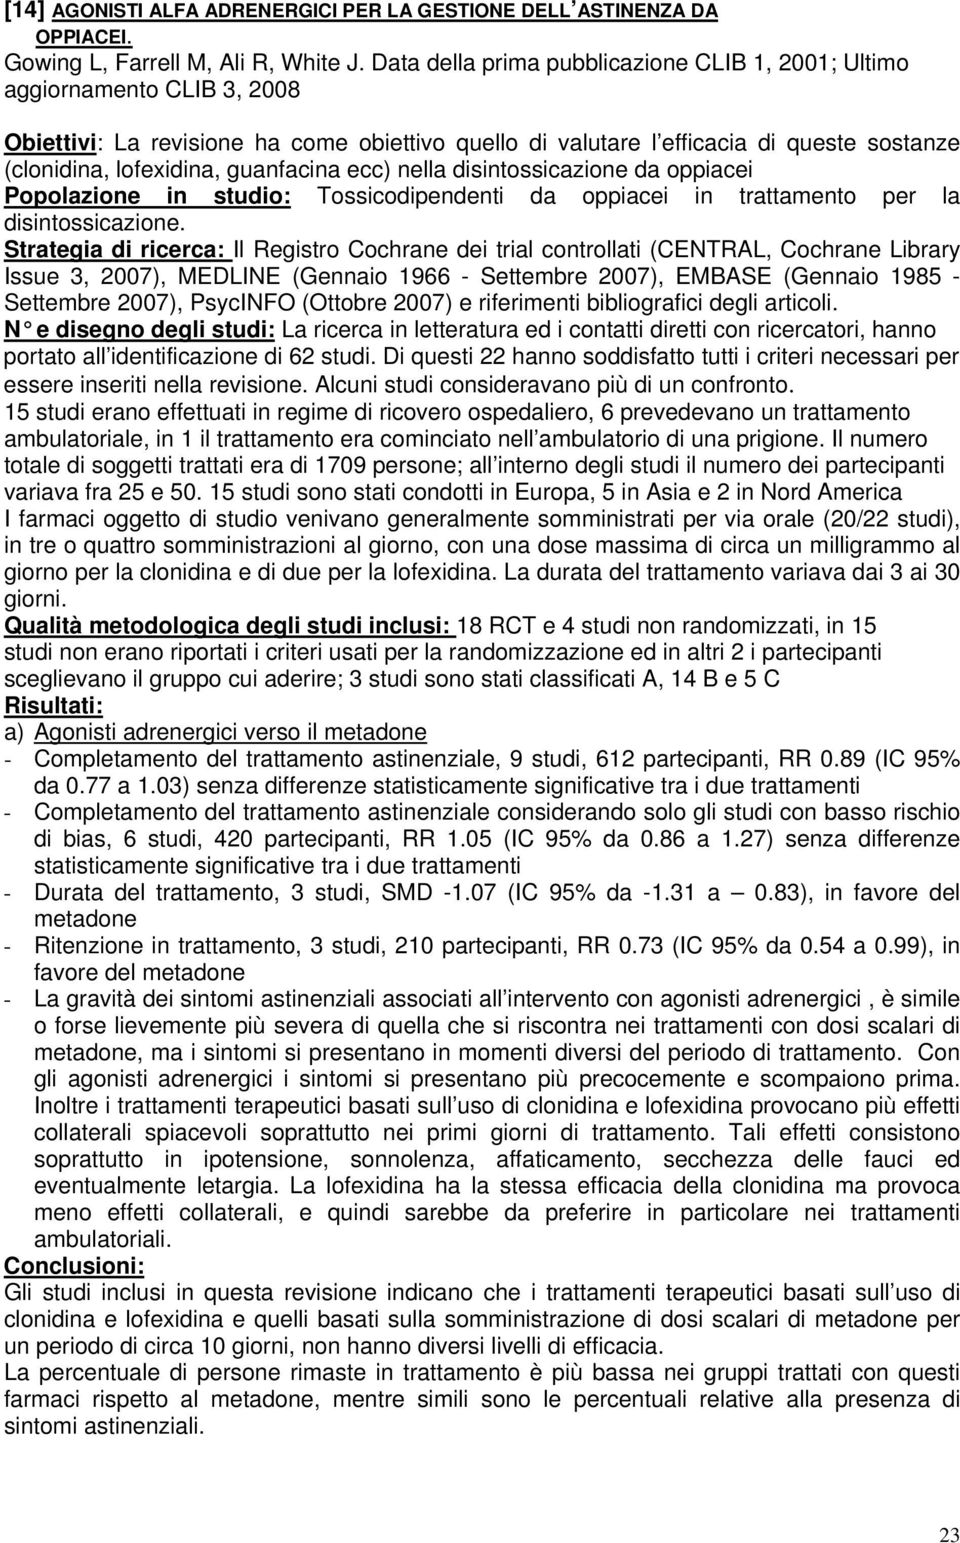 guanfacina ecc) nella disintossicazione da oppiacei Strategia di ricerca: Il Registro Cochrane dei trial controllati (CENTRAL, Cochrane Library Issue 3, 2007), MEDLINE (Gennaio 1966 - Settembre